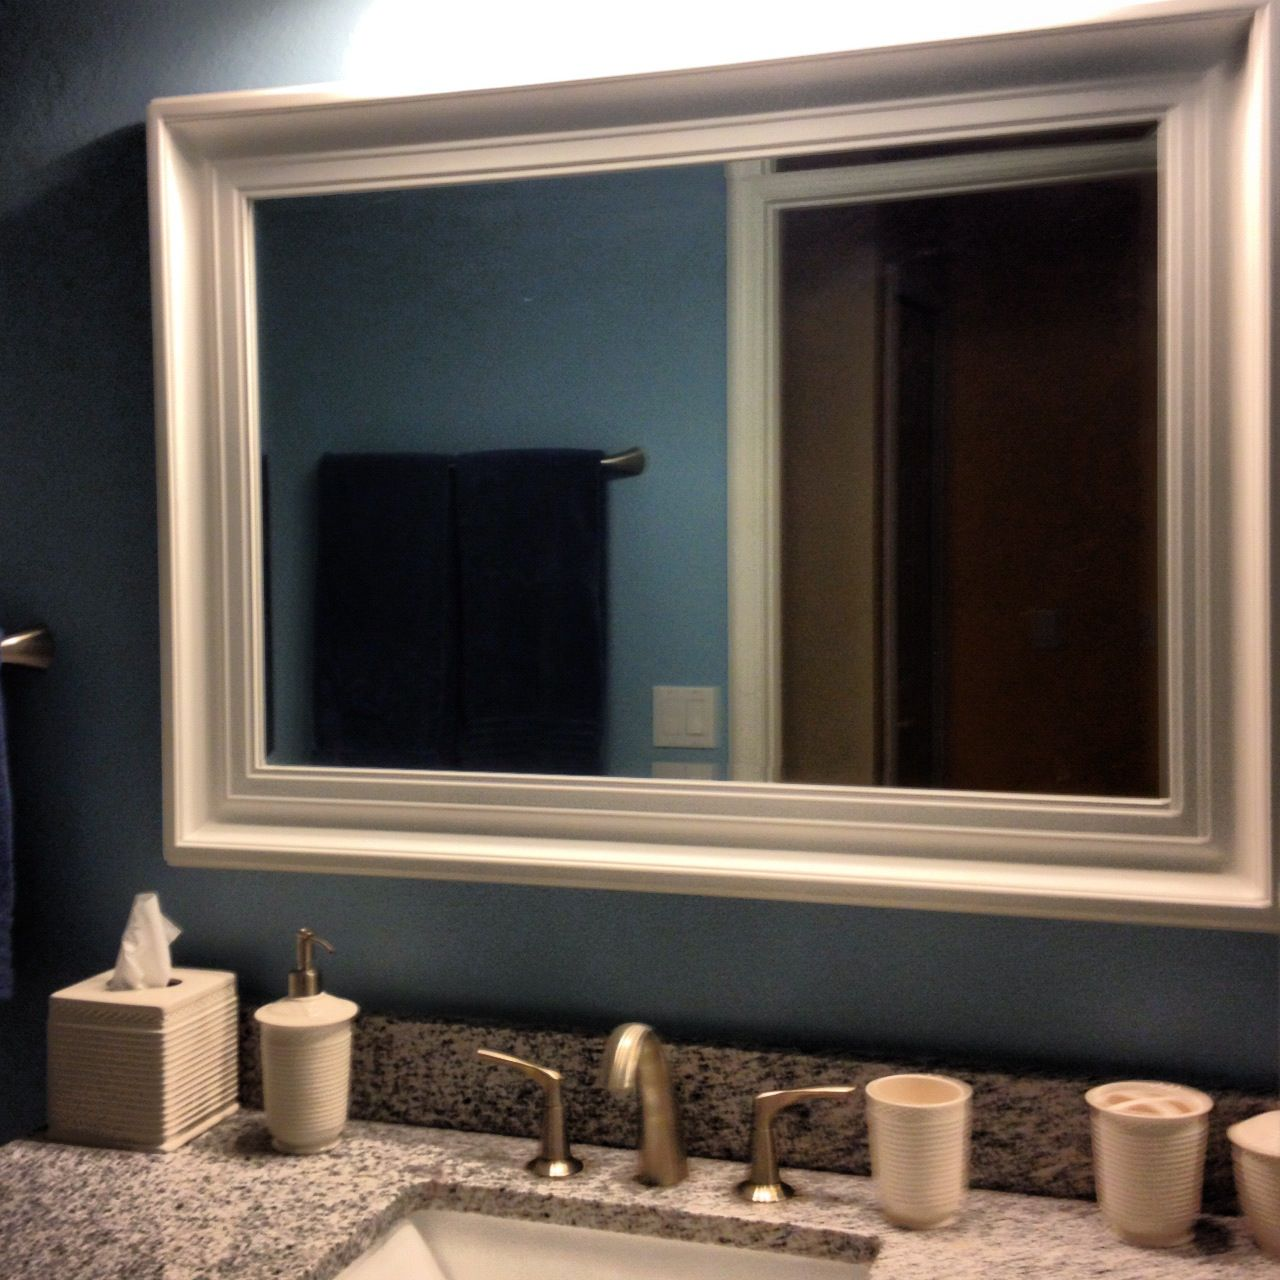 Grey Granite Top and White Sink Located under White Framed Bathroom Mirrors on Grey Painted Wall